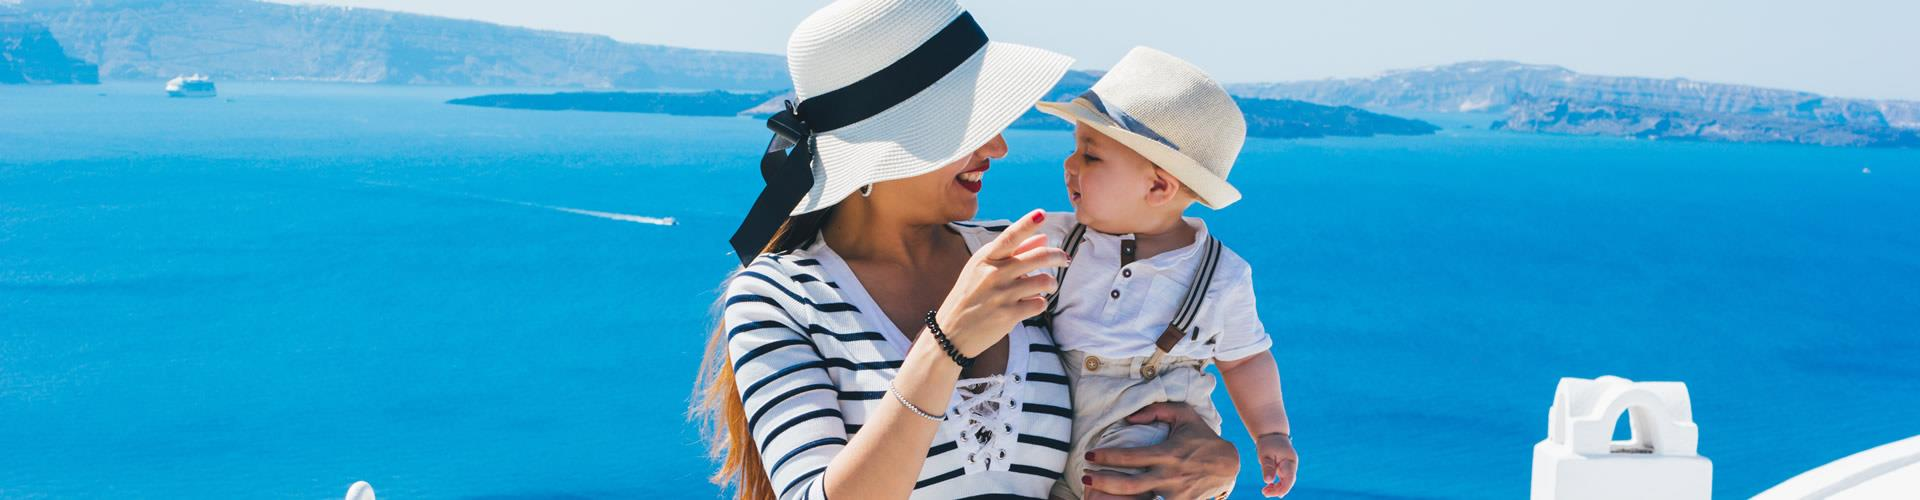 Santorini With Your Family? Best Places to Stay & Things to Do